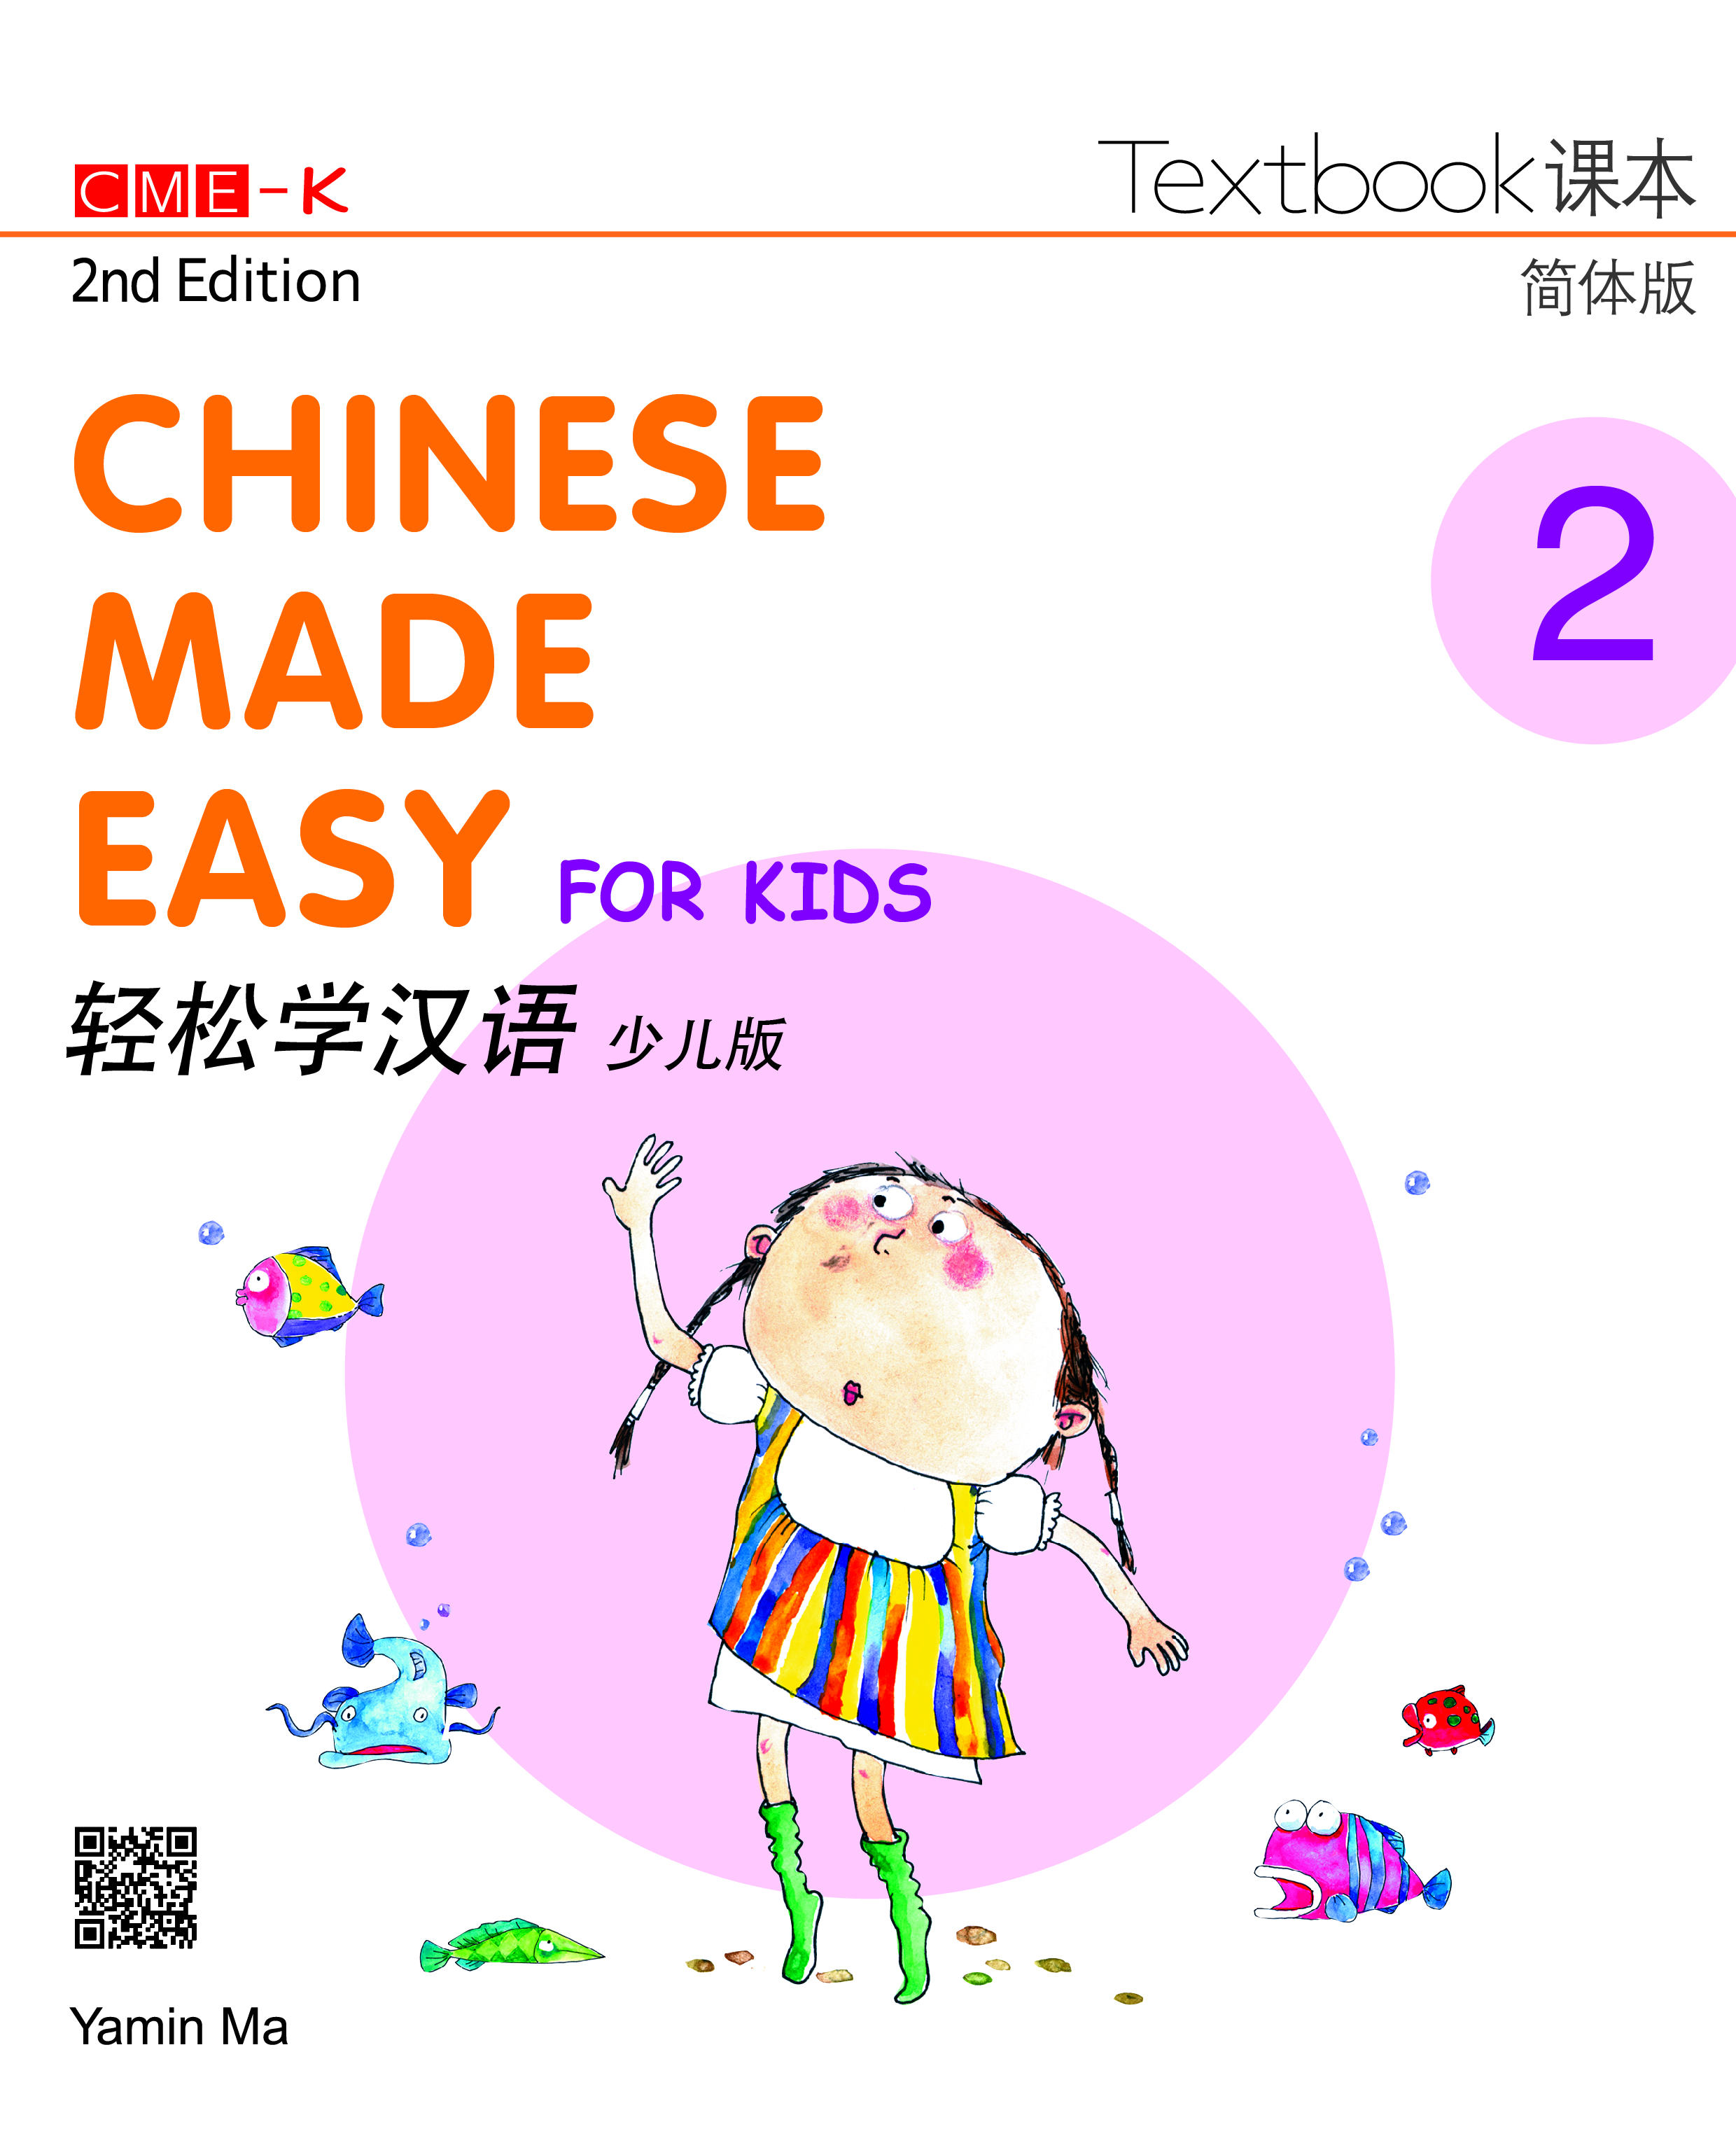 Chinese Made Easy for Kids Textbook 2, 2nd Ed (Simplified)  轻松学汉语少儿版课本2